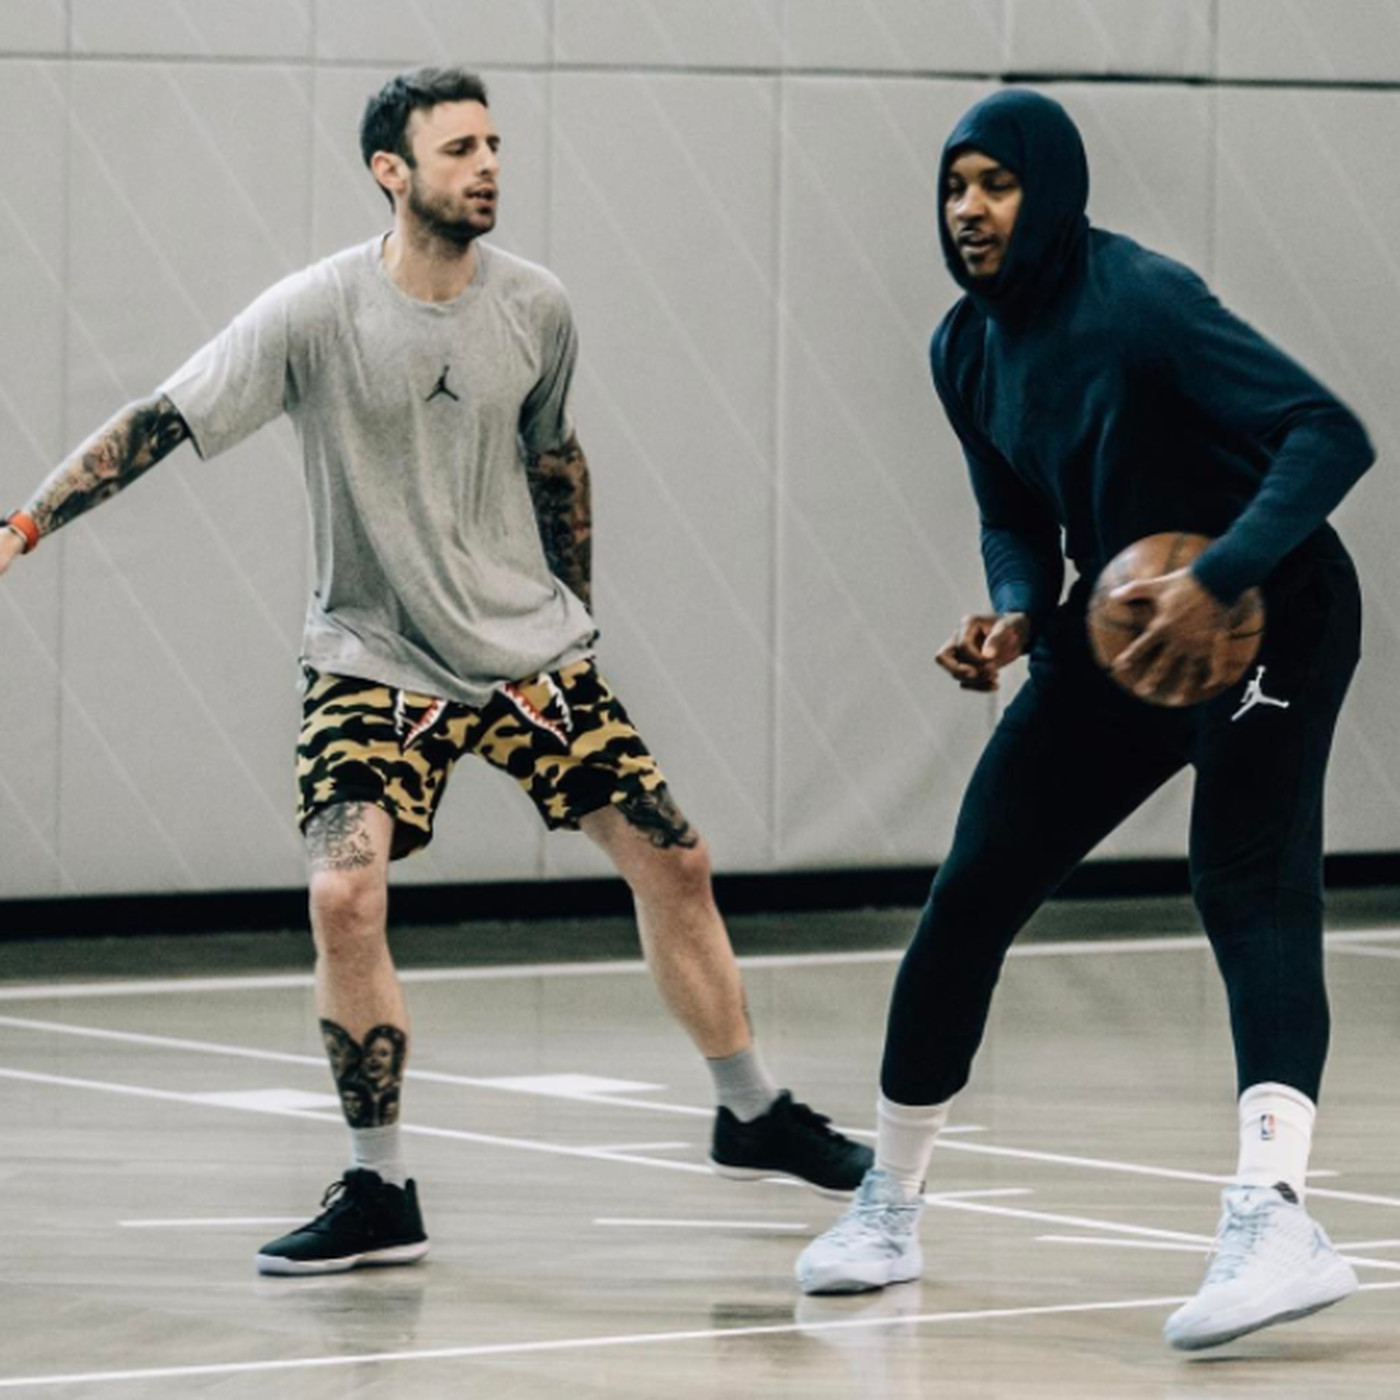 bb5414640dd How  Hoodie Melo  became our new favorite Melo - SBNation.com